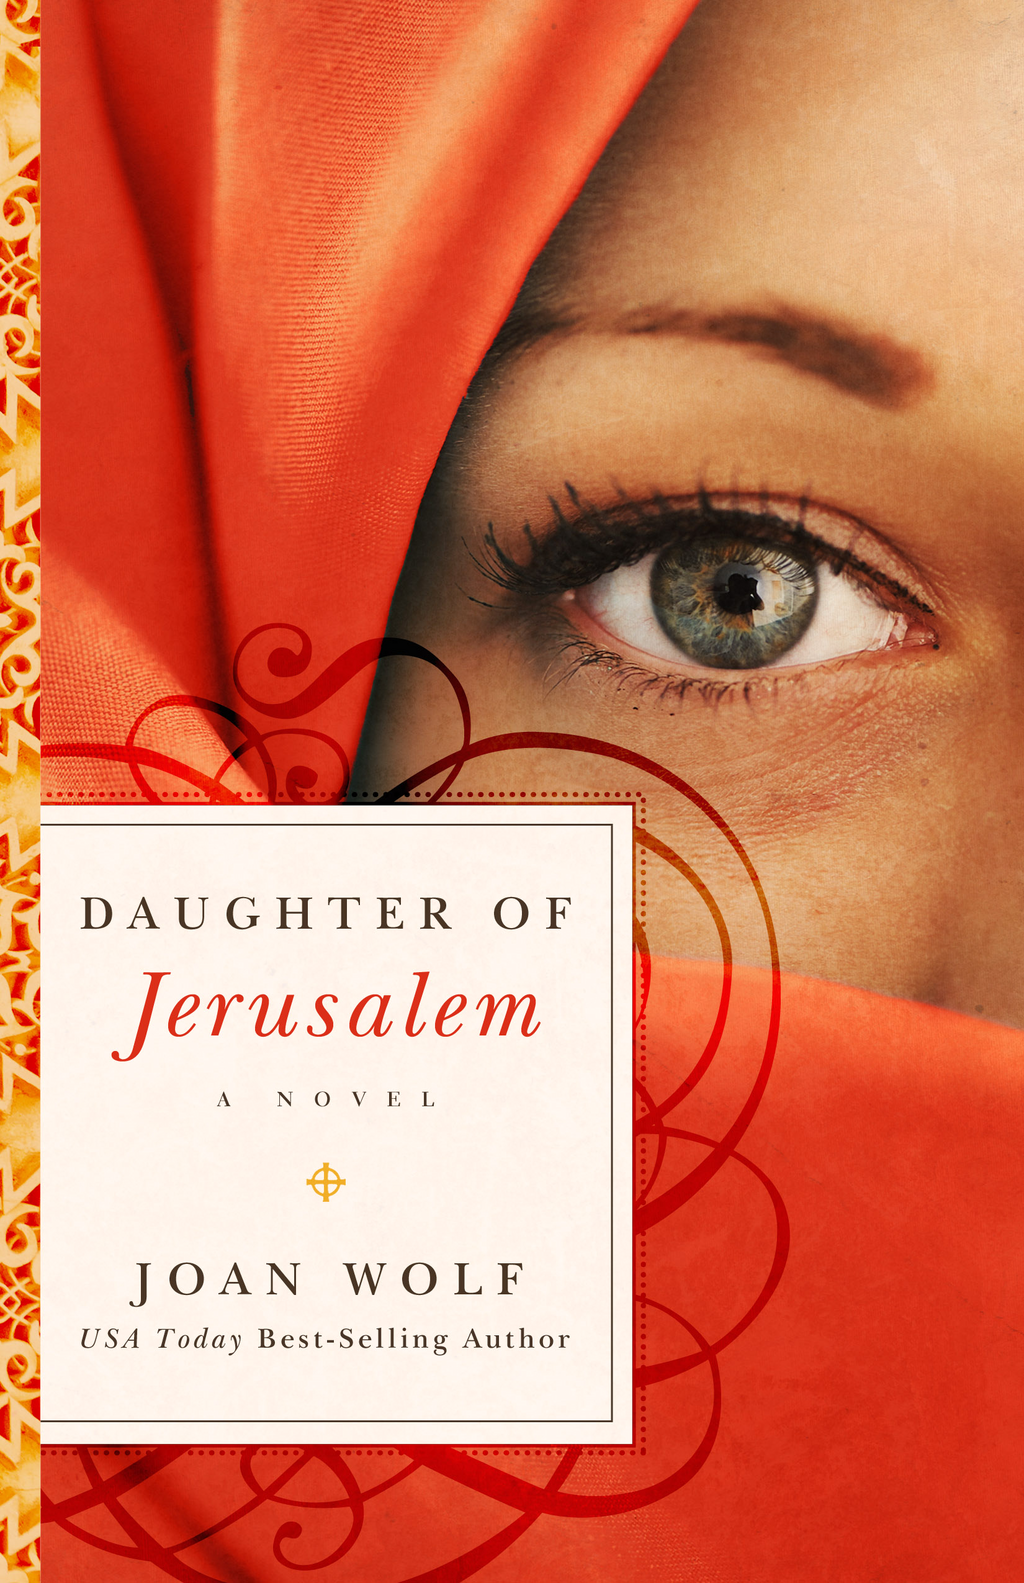 Daughter of Jerusalem